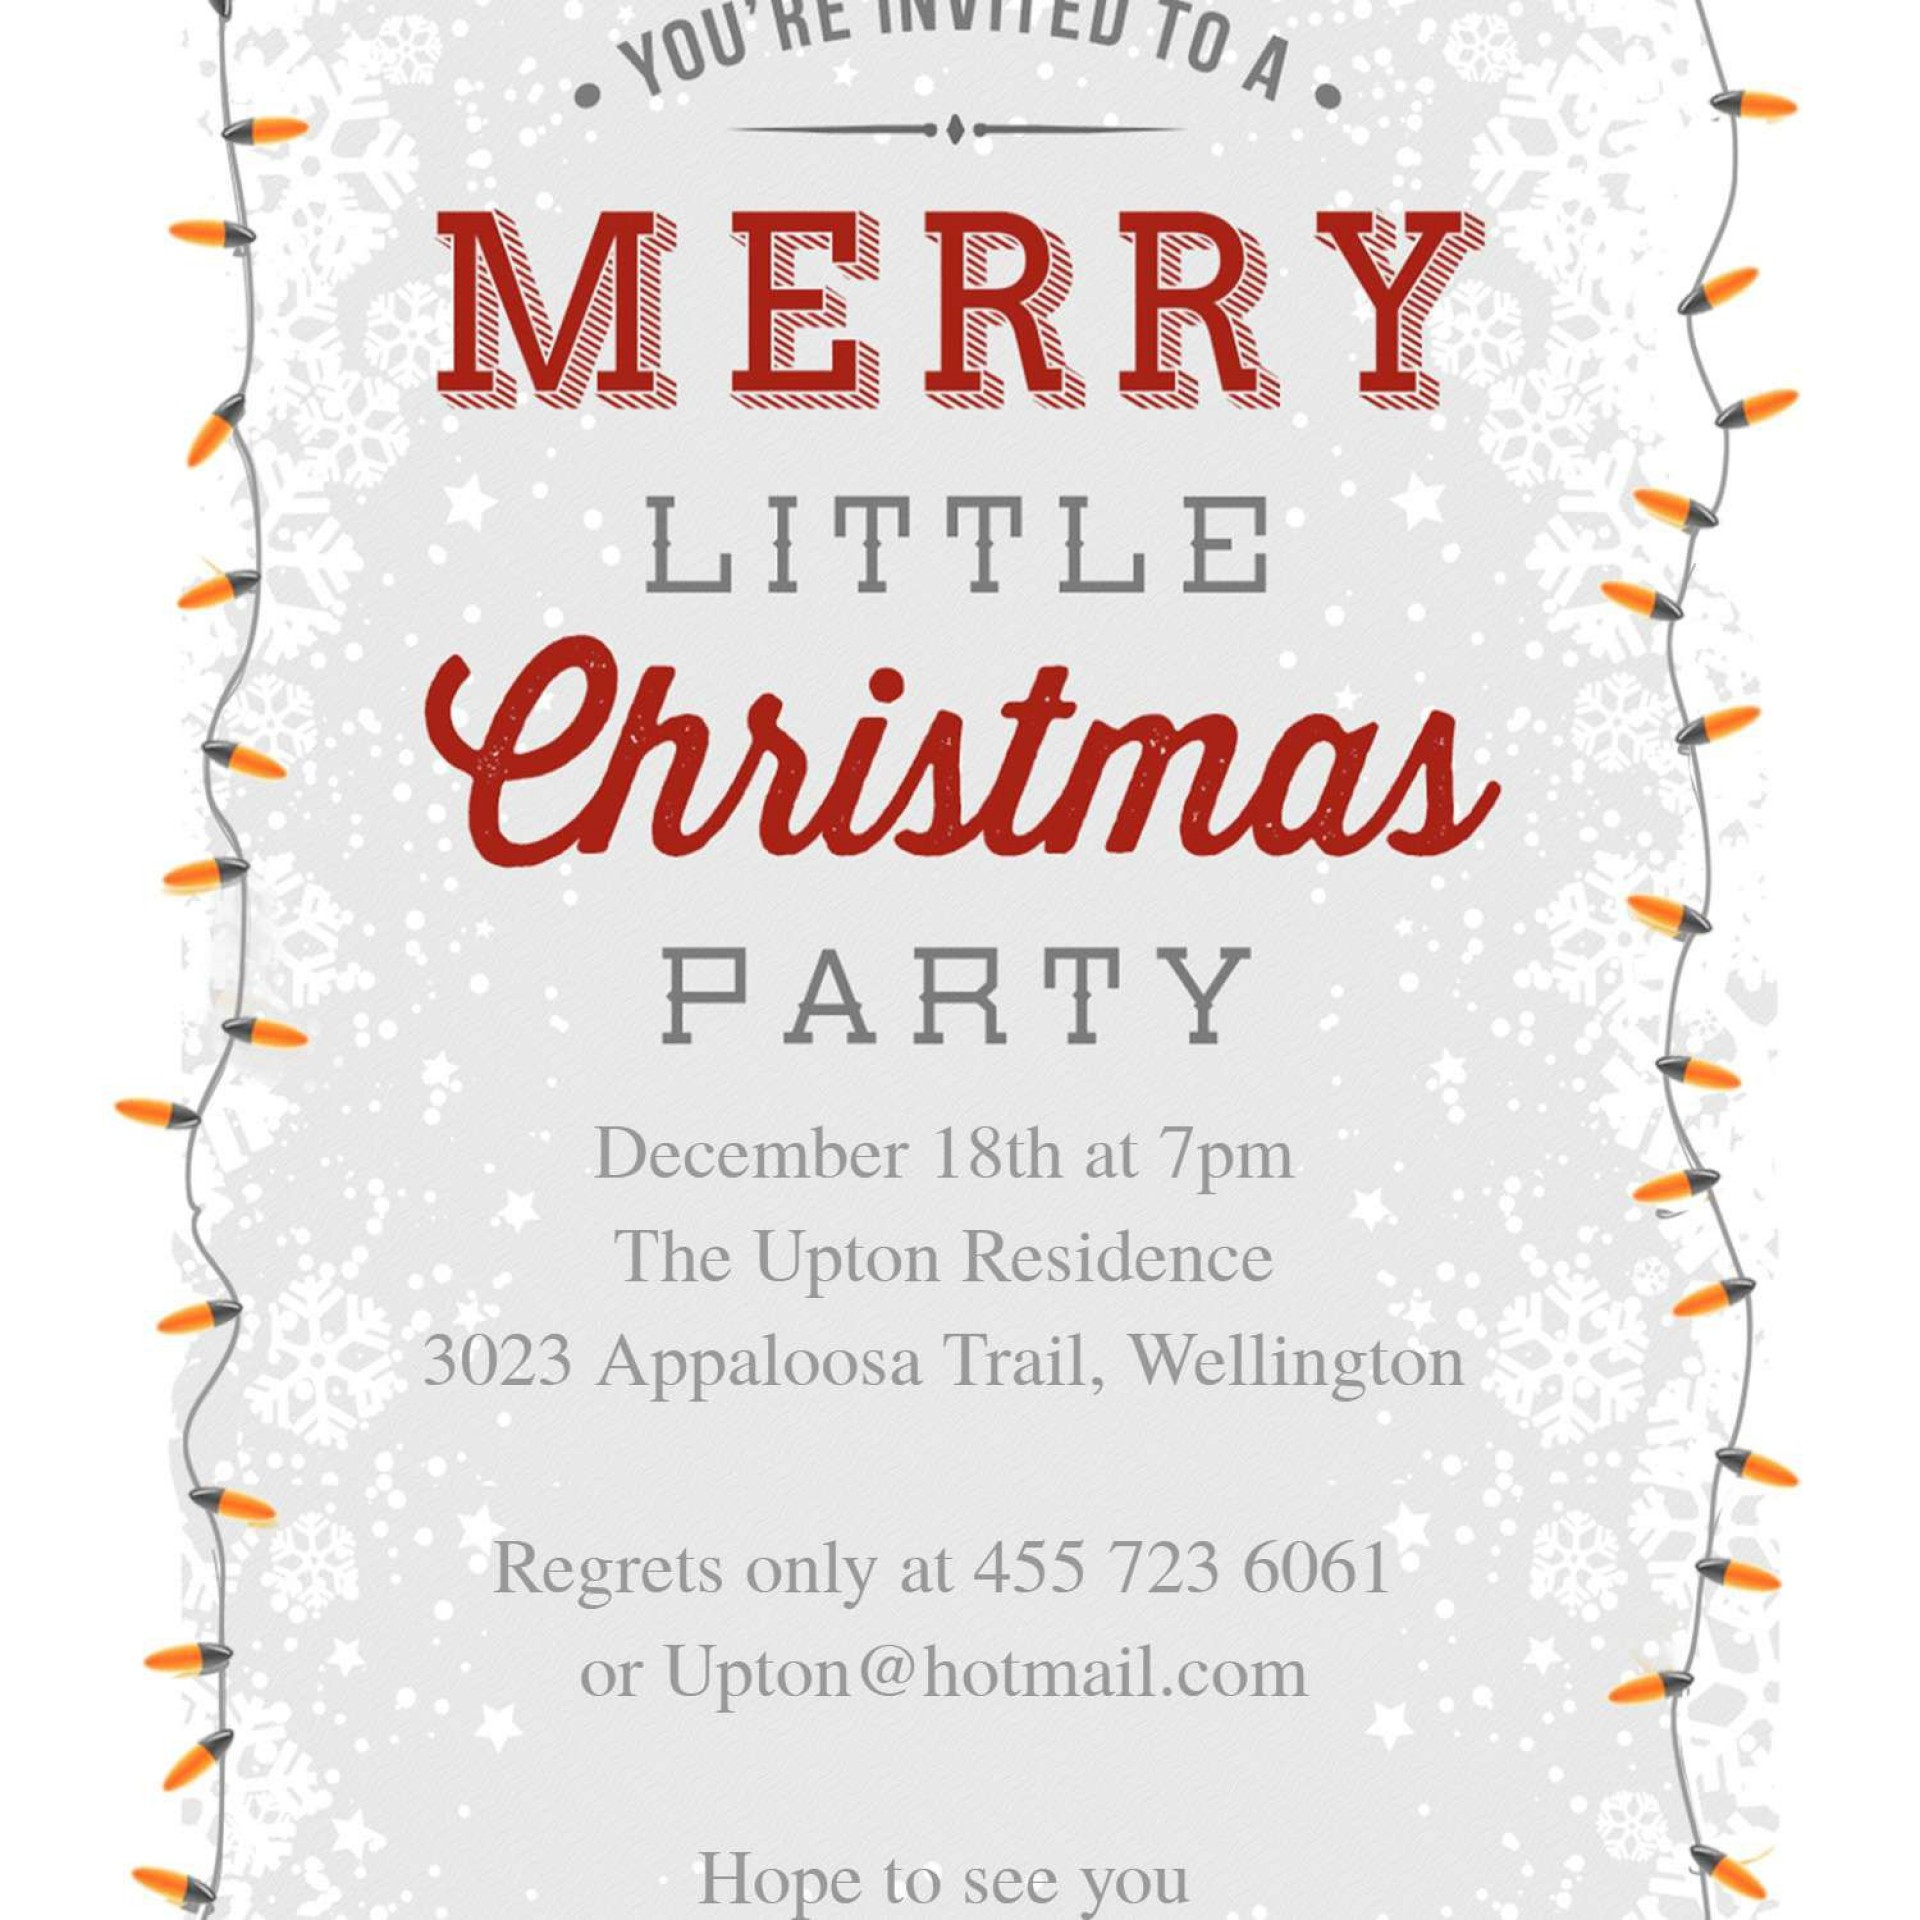 008 Awful Free Holiday Party Flyer Template Word Image 1920